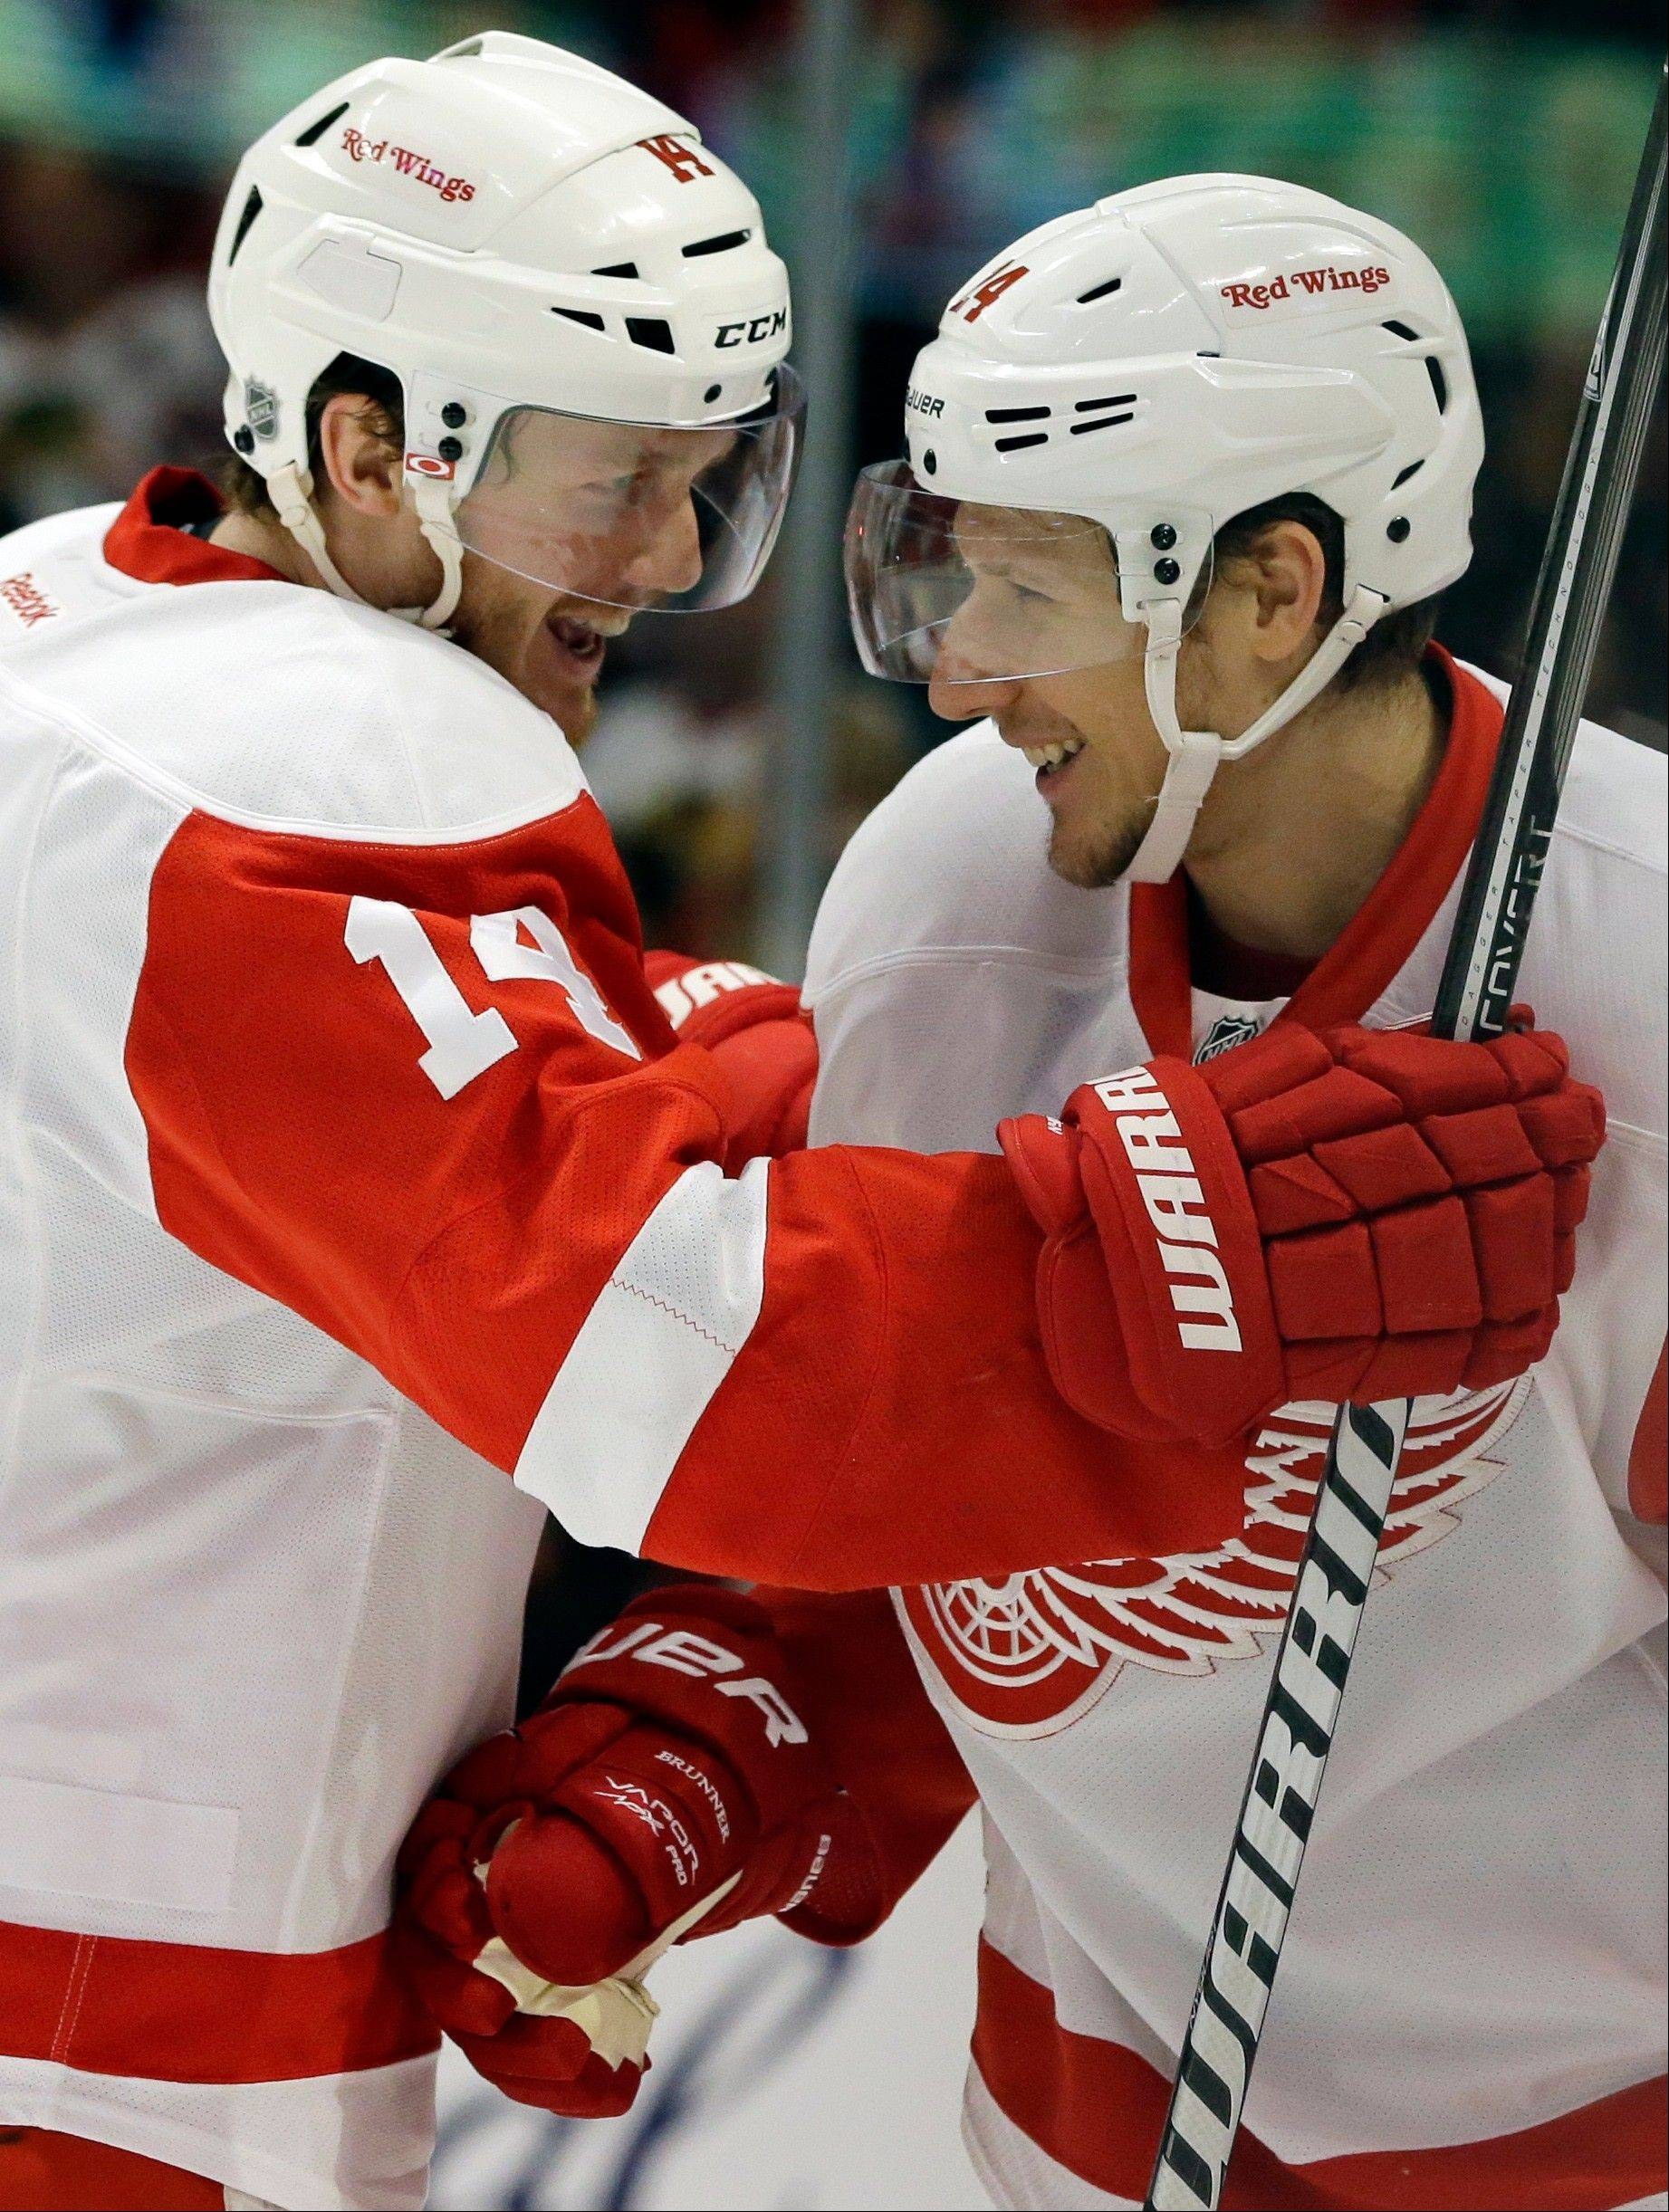 Detroit Red Wings' Damien Brunner (24), right, celebrates with teammate Gustav Nyquist (14) after scoring a goal against the Chicago Blackhawks during the first period of Game 1 of an NHL hockey playoffs Western Conference semifinal in Chicago, Wednesday, May 15, 2013.